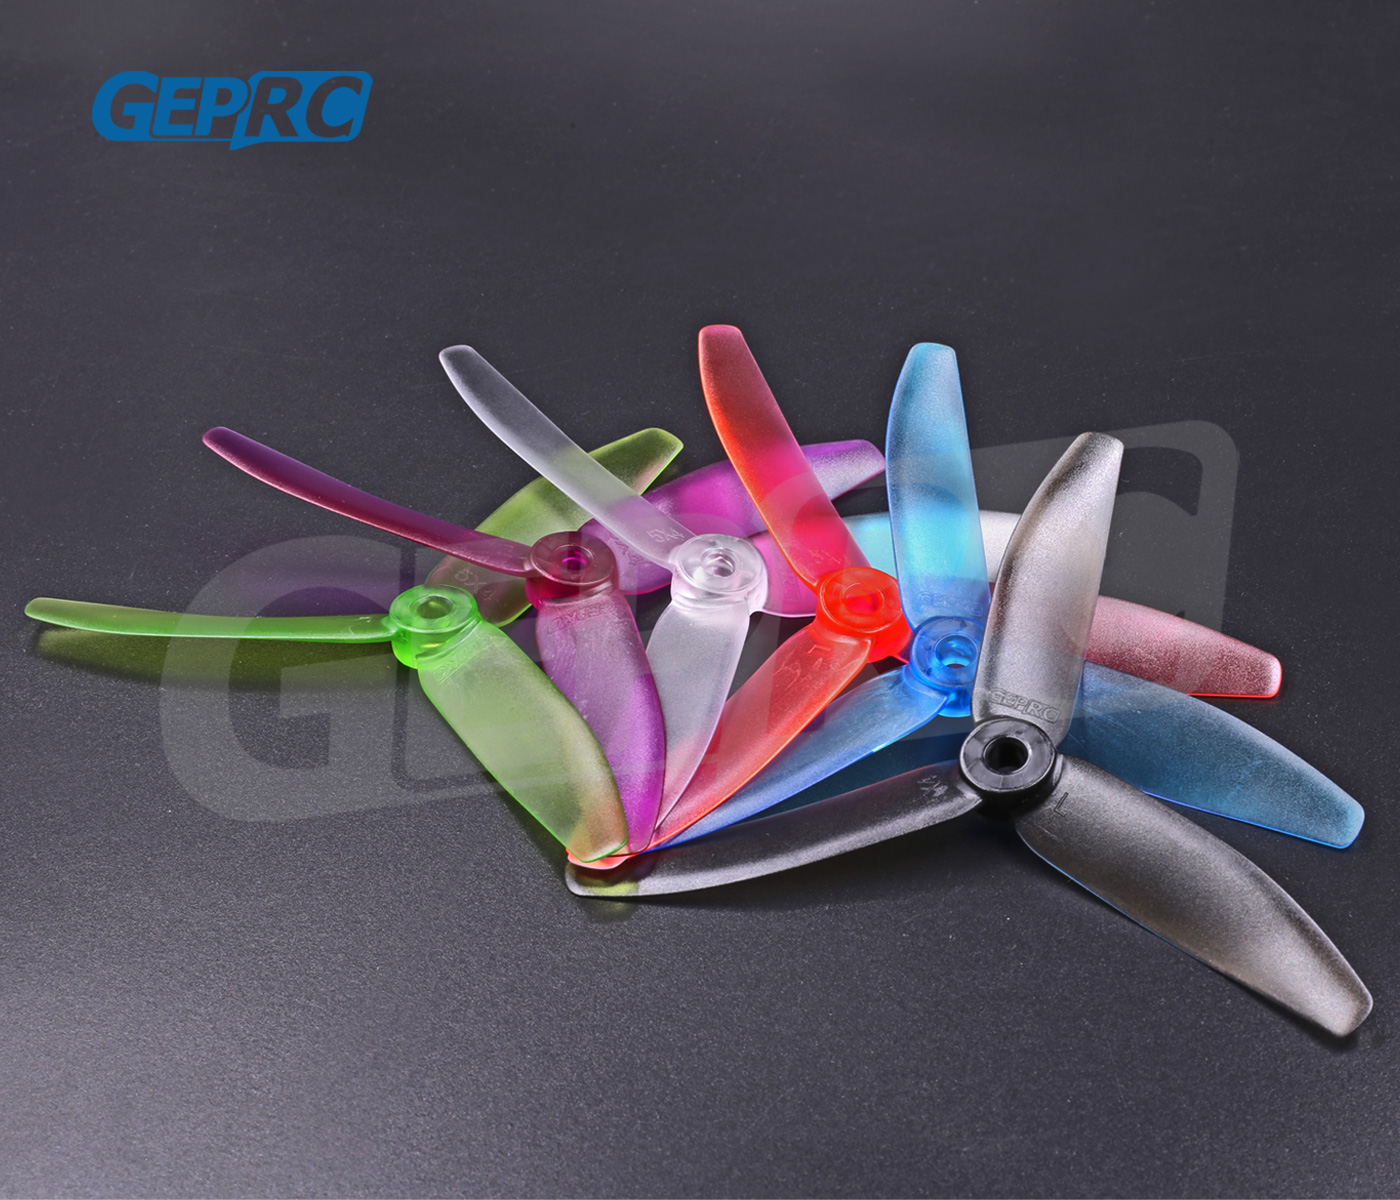 10 Pairs GEPRC <font><b>5040</b></font> <font><b>Props</b></font> 5 Inch CW CCW 3 Blade Propeller For RC Quadcopter Models Toys Spare Part image